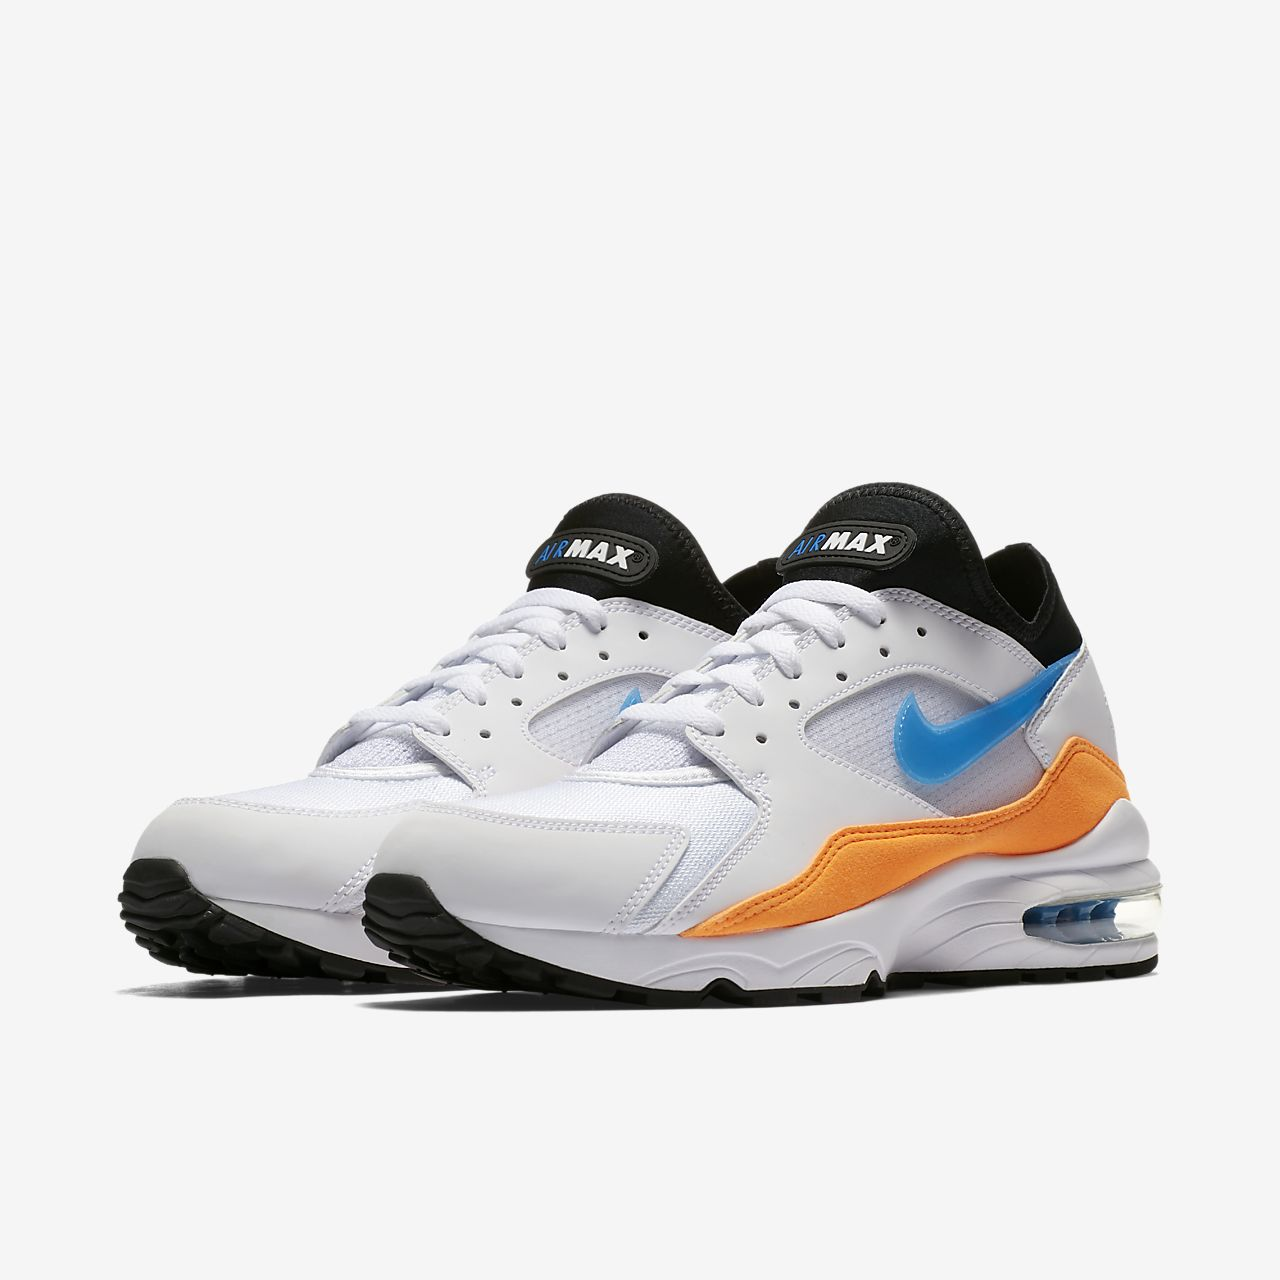 ... Chaussure Nike Air Max 93 pour Homme